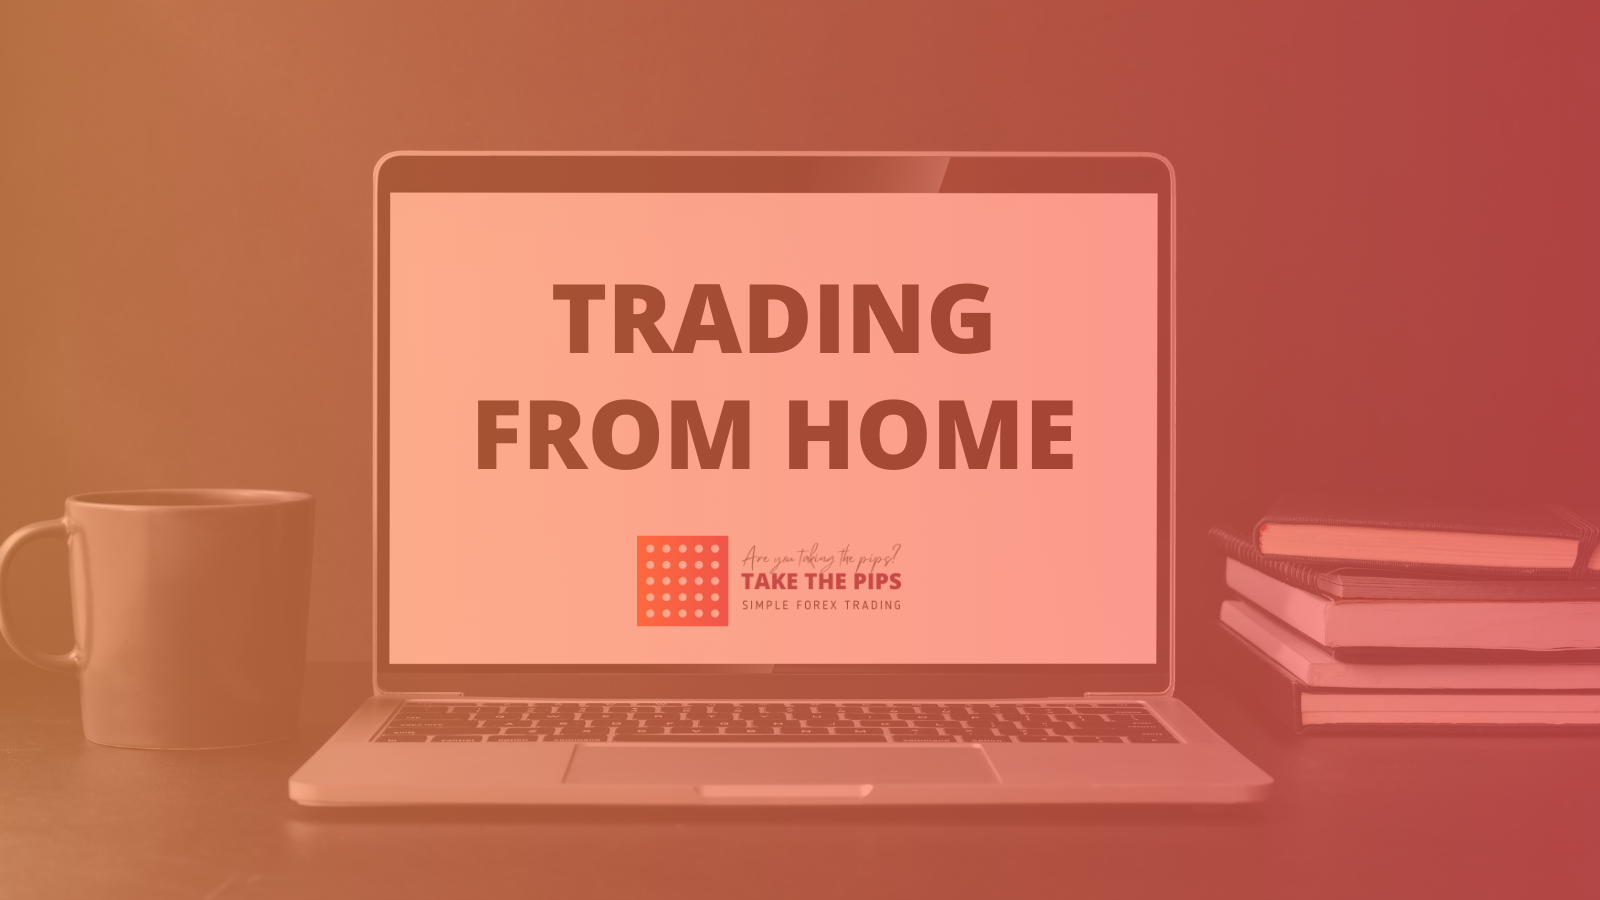 TRADING FROM HOME